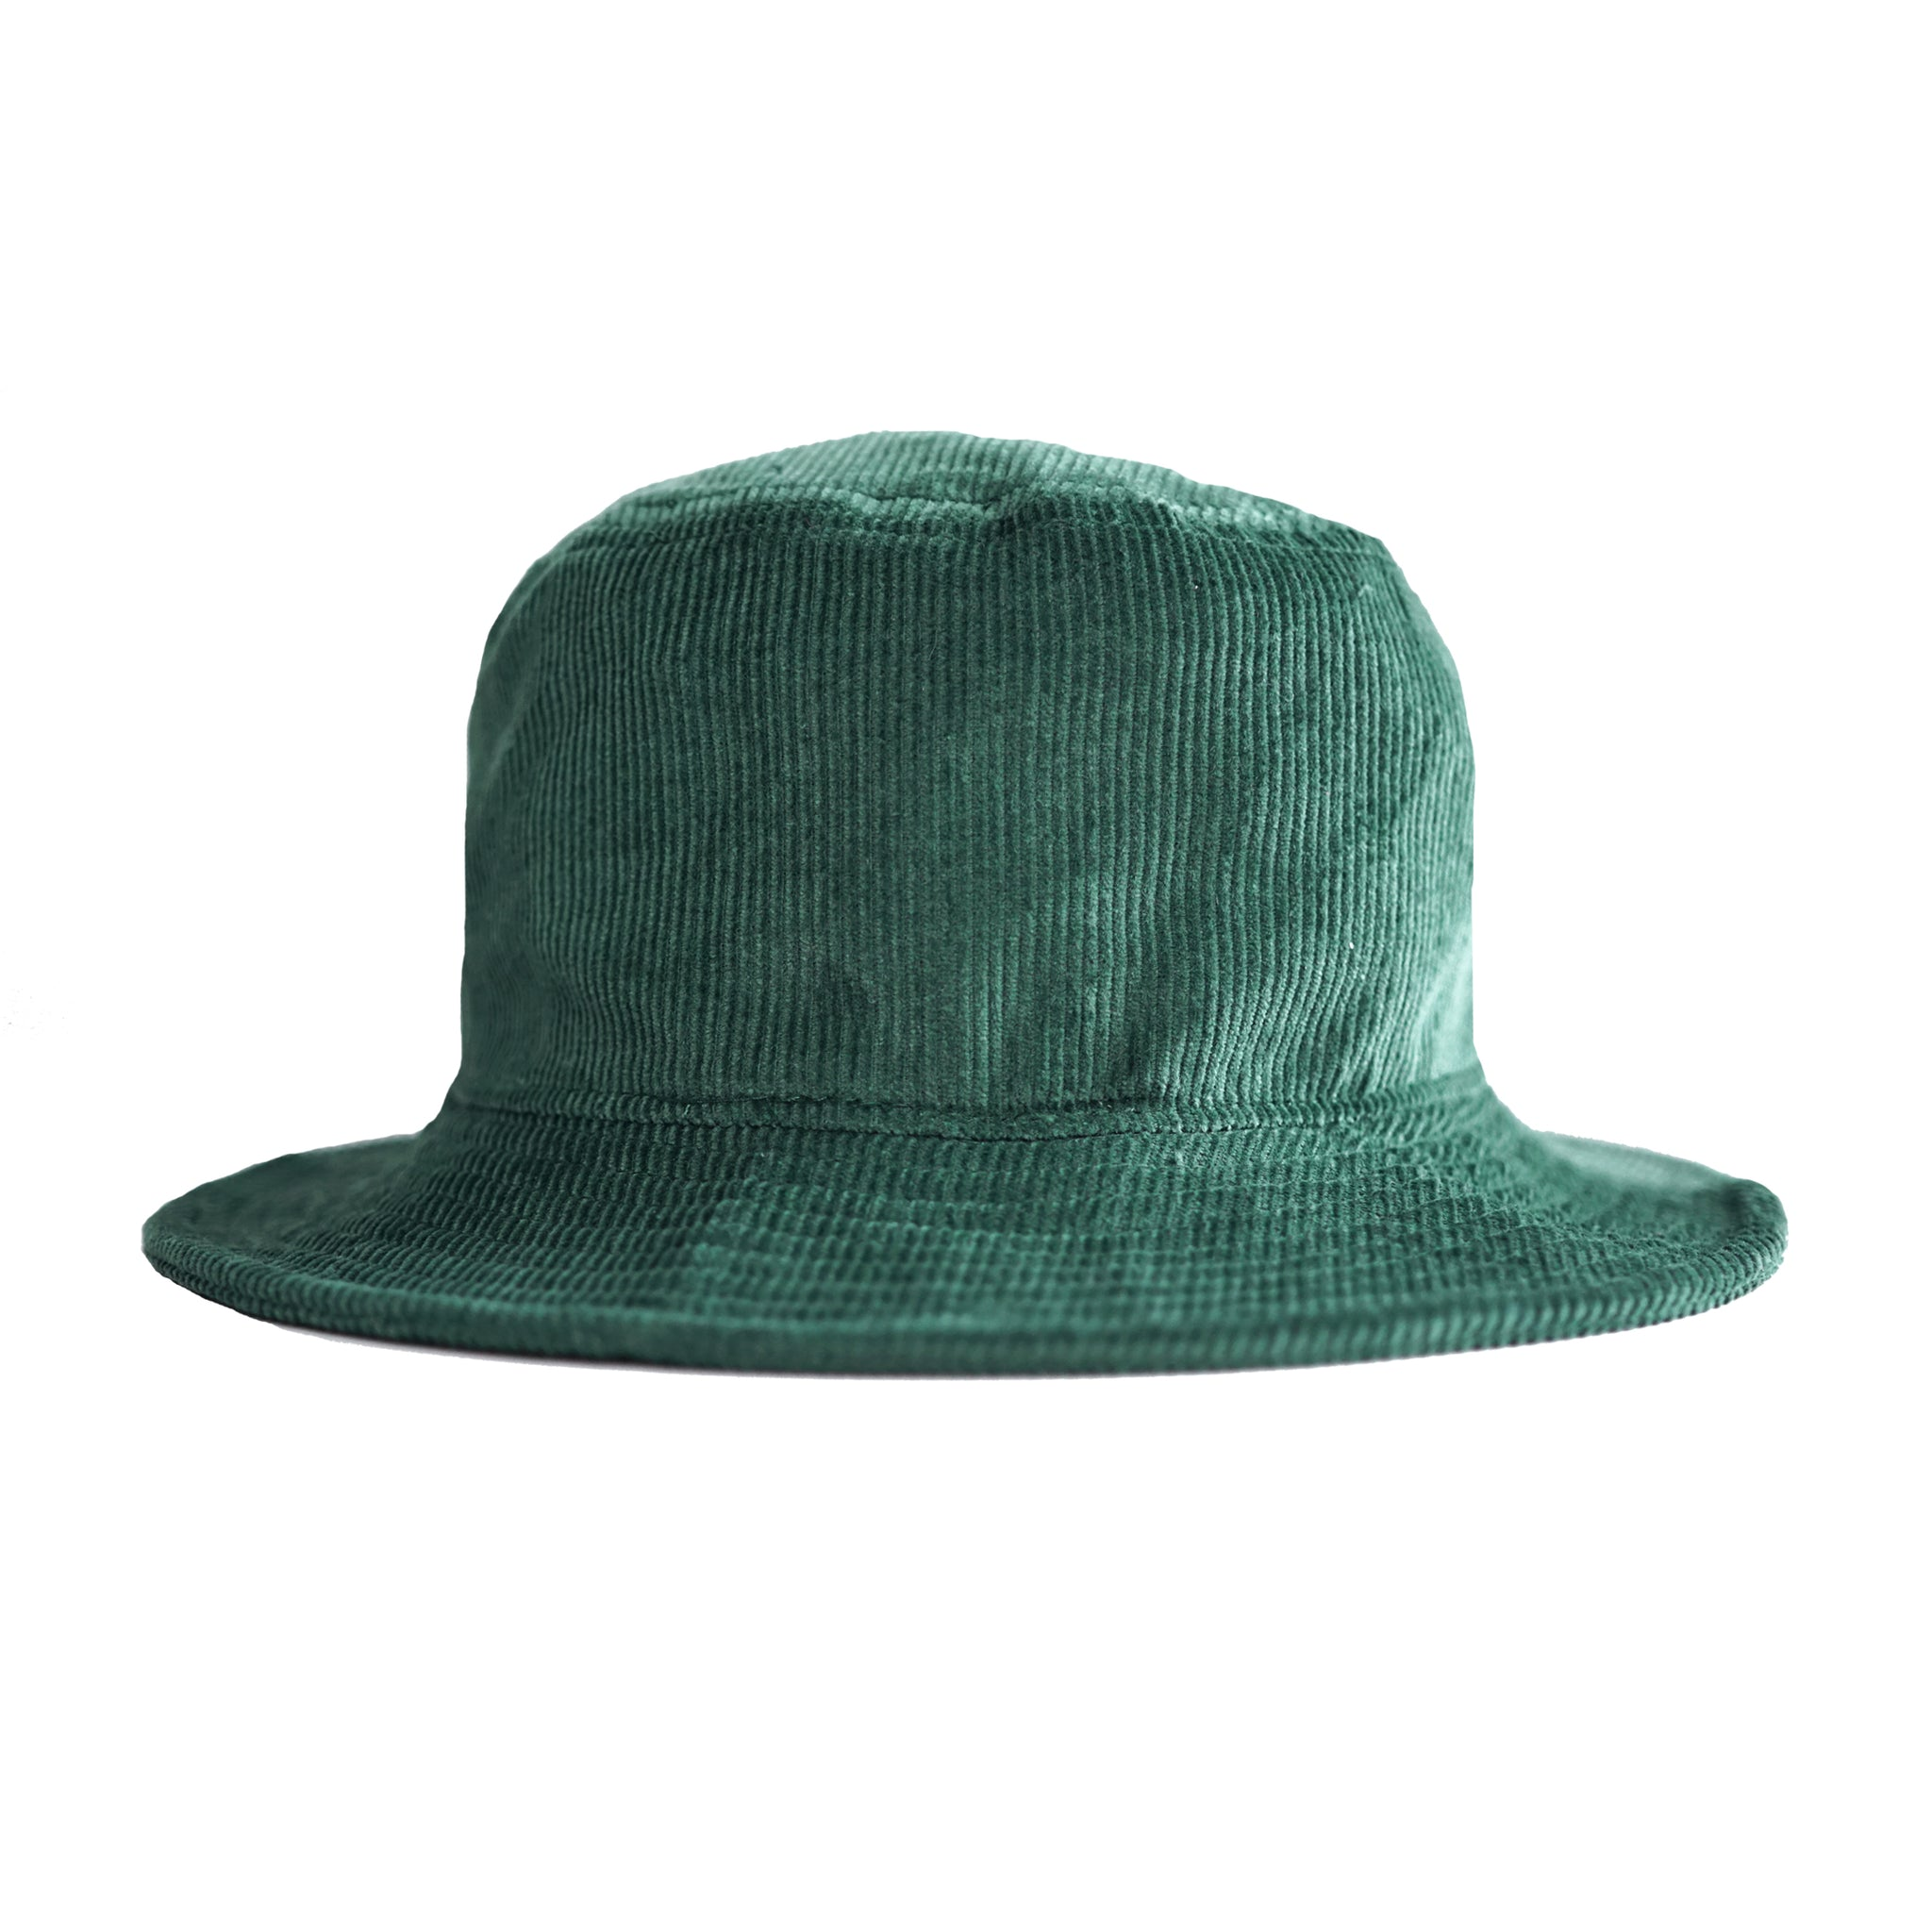 Campus Bucket Hat - Green